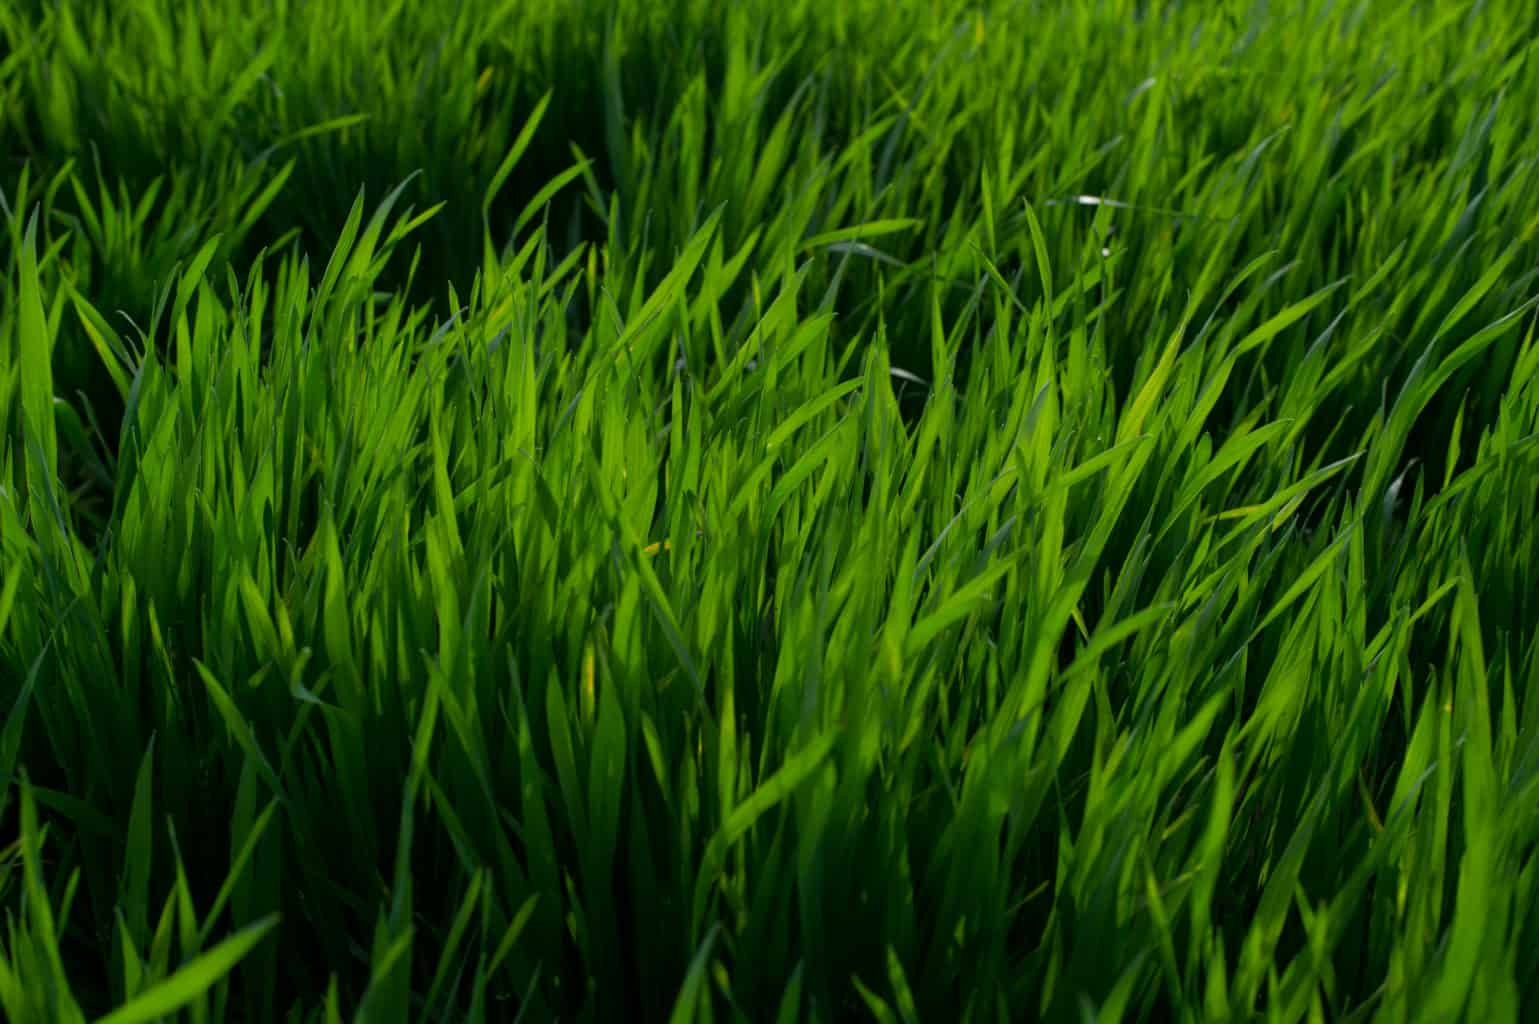 closeup of grass